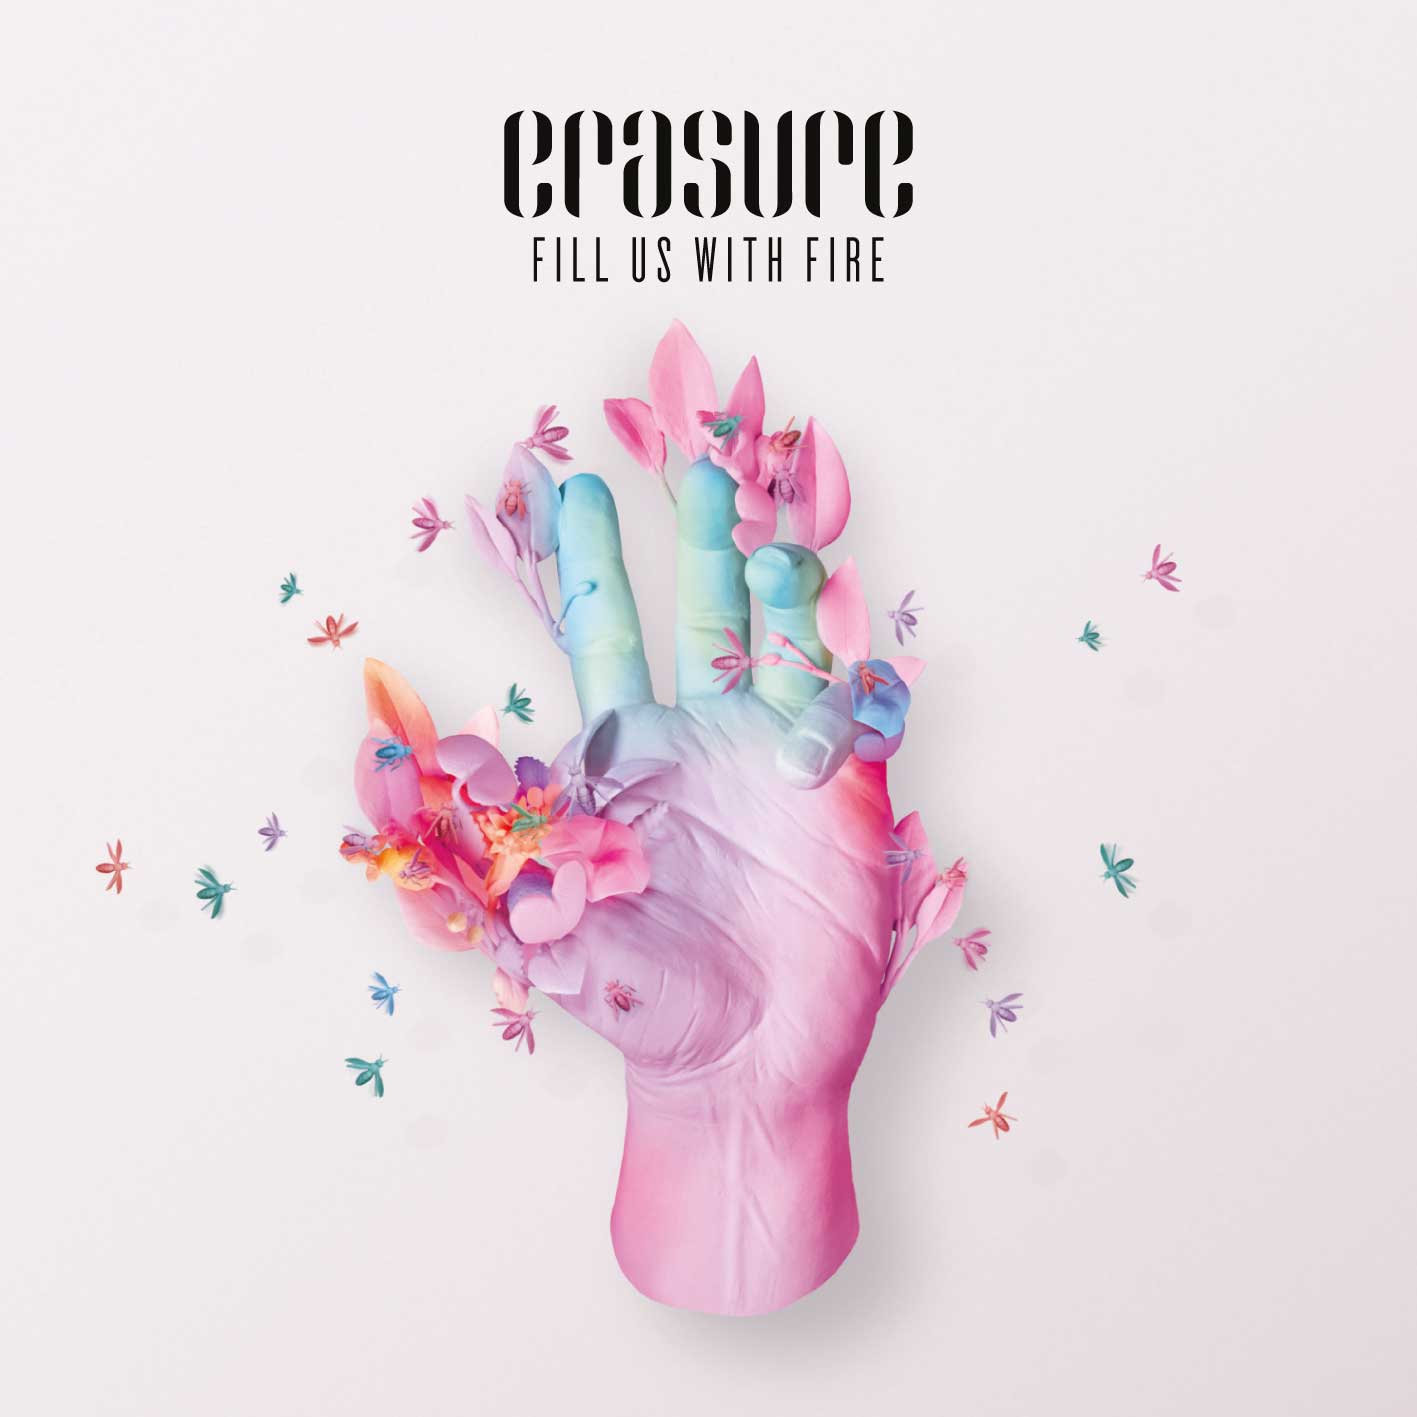 Erasure New Single & Video Fill Us With Fire